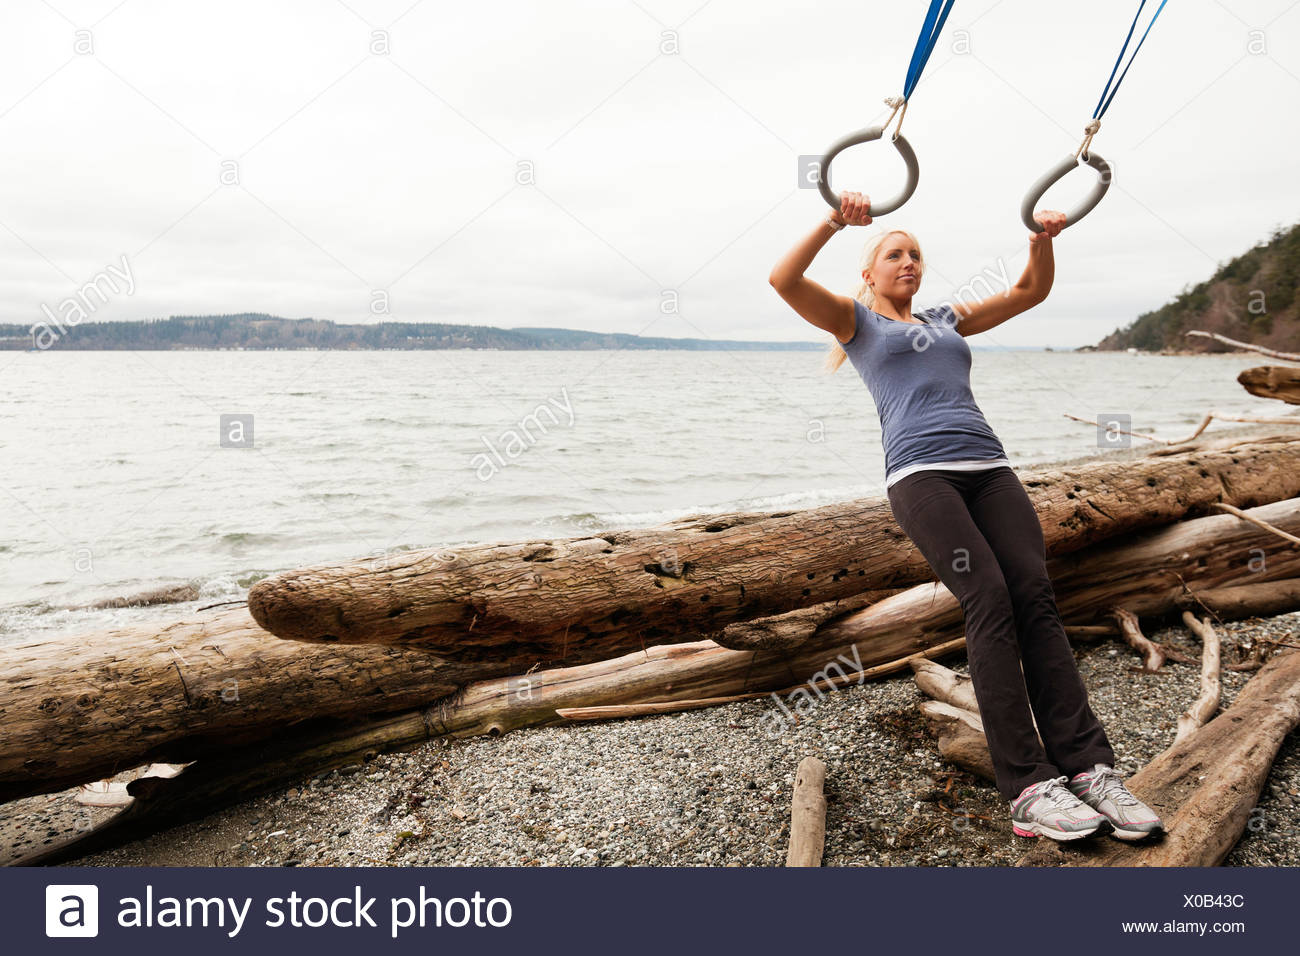 A woman performs suspension training exercises on a rustic beach. - Stock Image